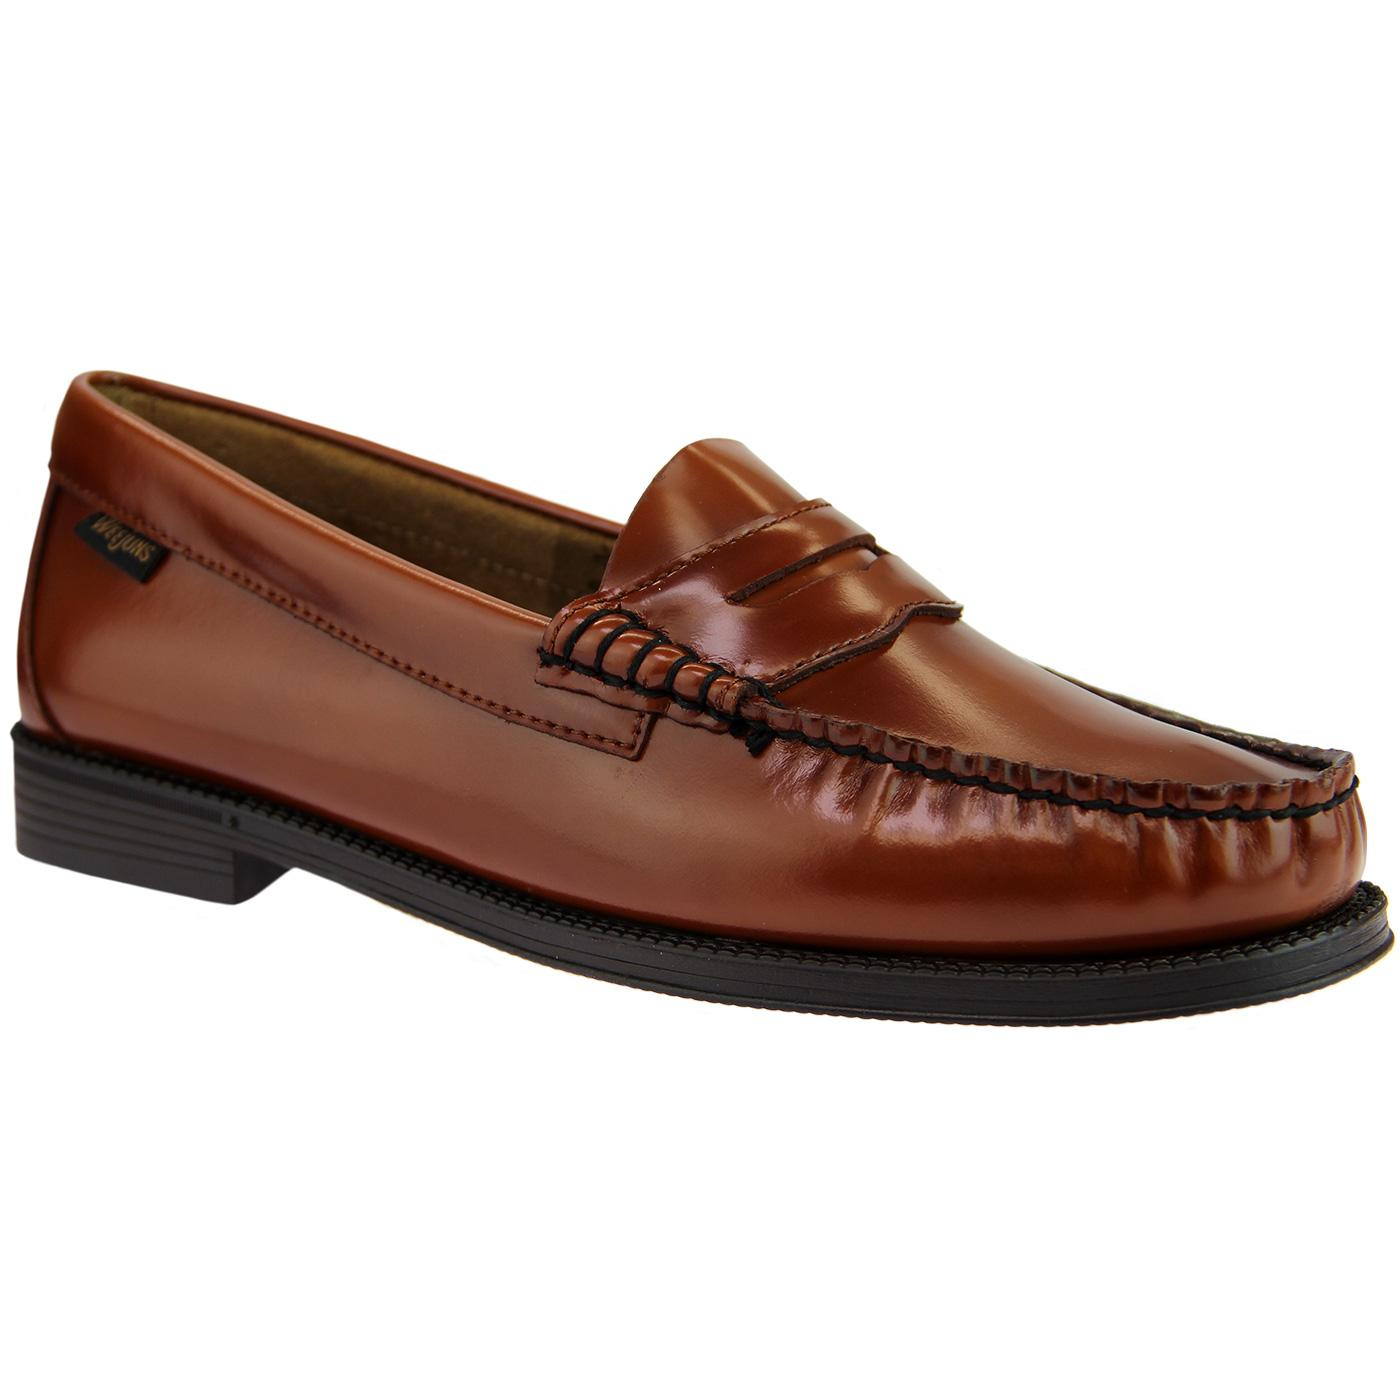 BASS WEEJUNS Women's Mod 60's Penny Loafers COGNAC